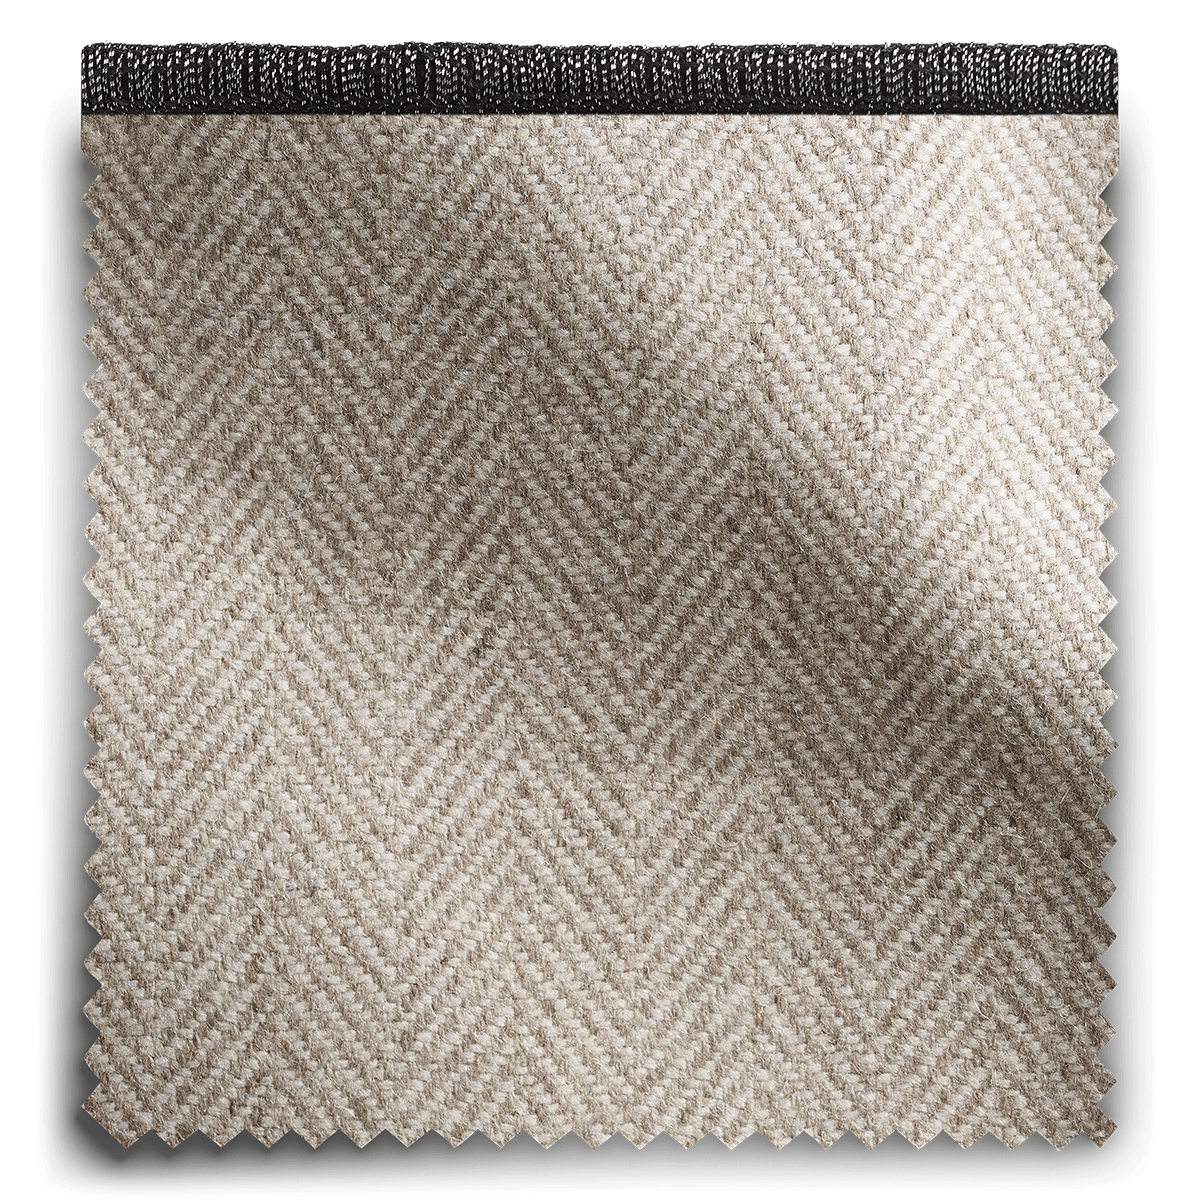 Image of Relaxed Herringbone Soft Stone Pipe fabric